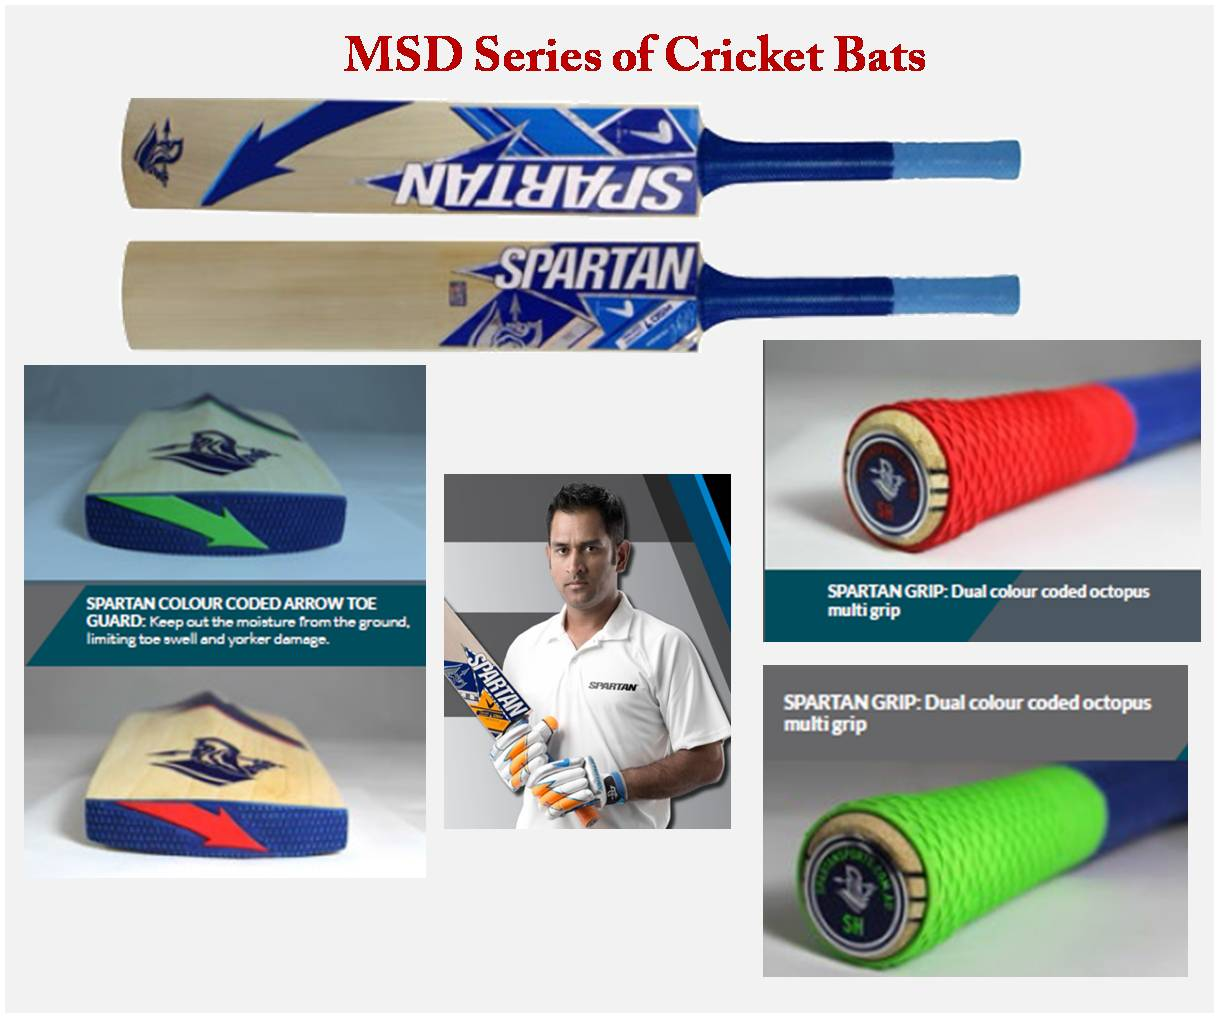 Spartan Cricket Bats Key Features